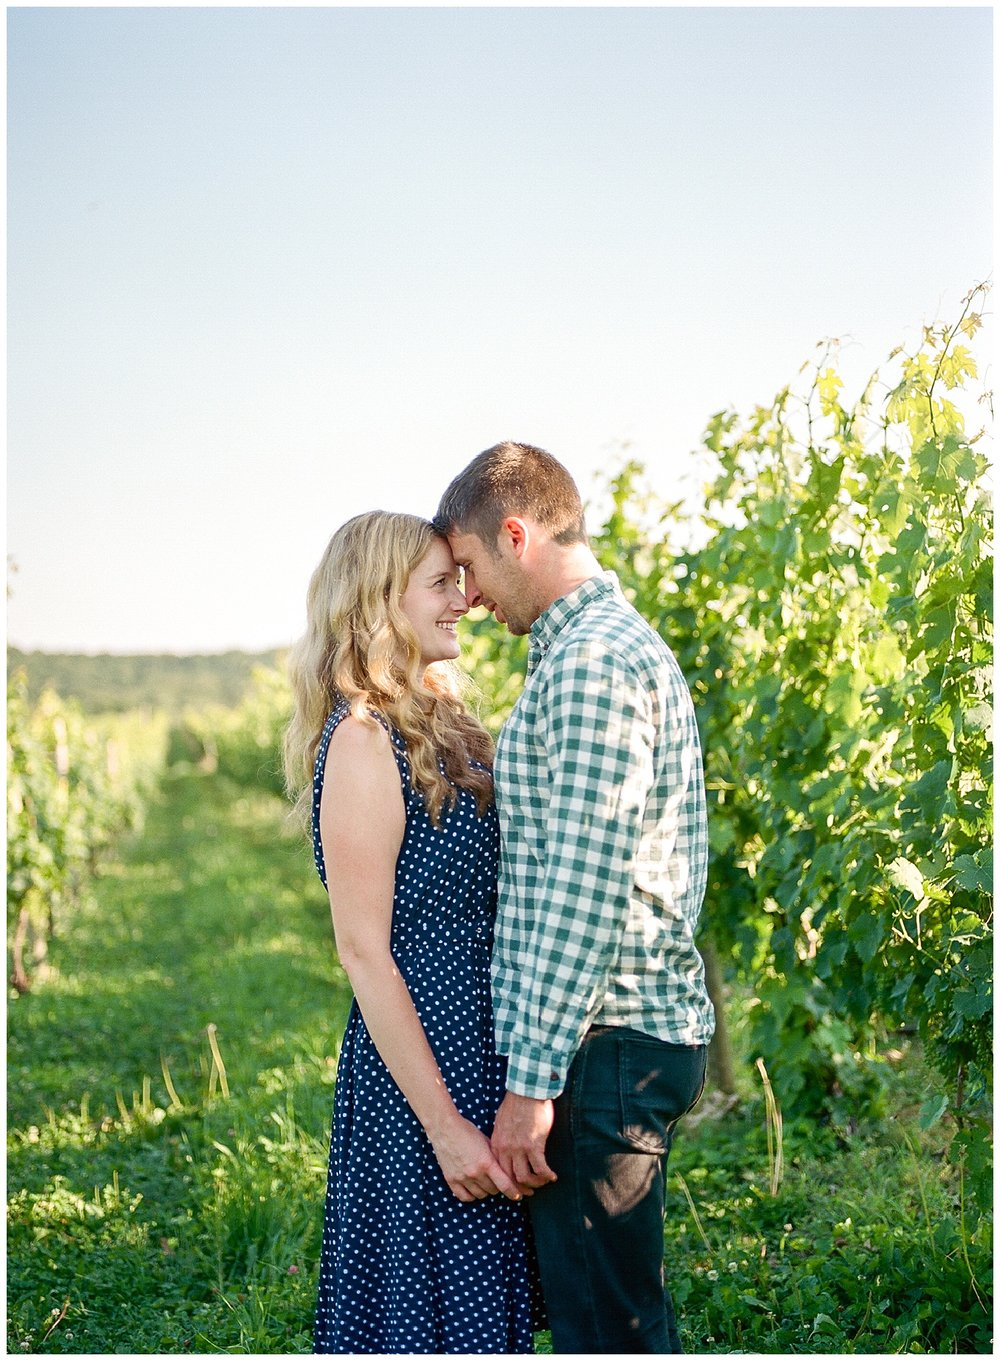 Hudson Valley Winery Engagement Session | Millbrook Vineyards + Winery | Millbrook, NY | www.redoakweddings.com